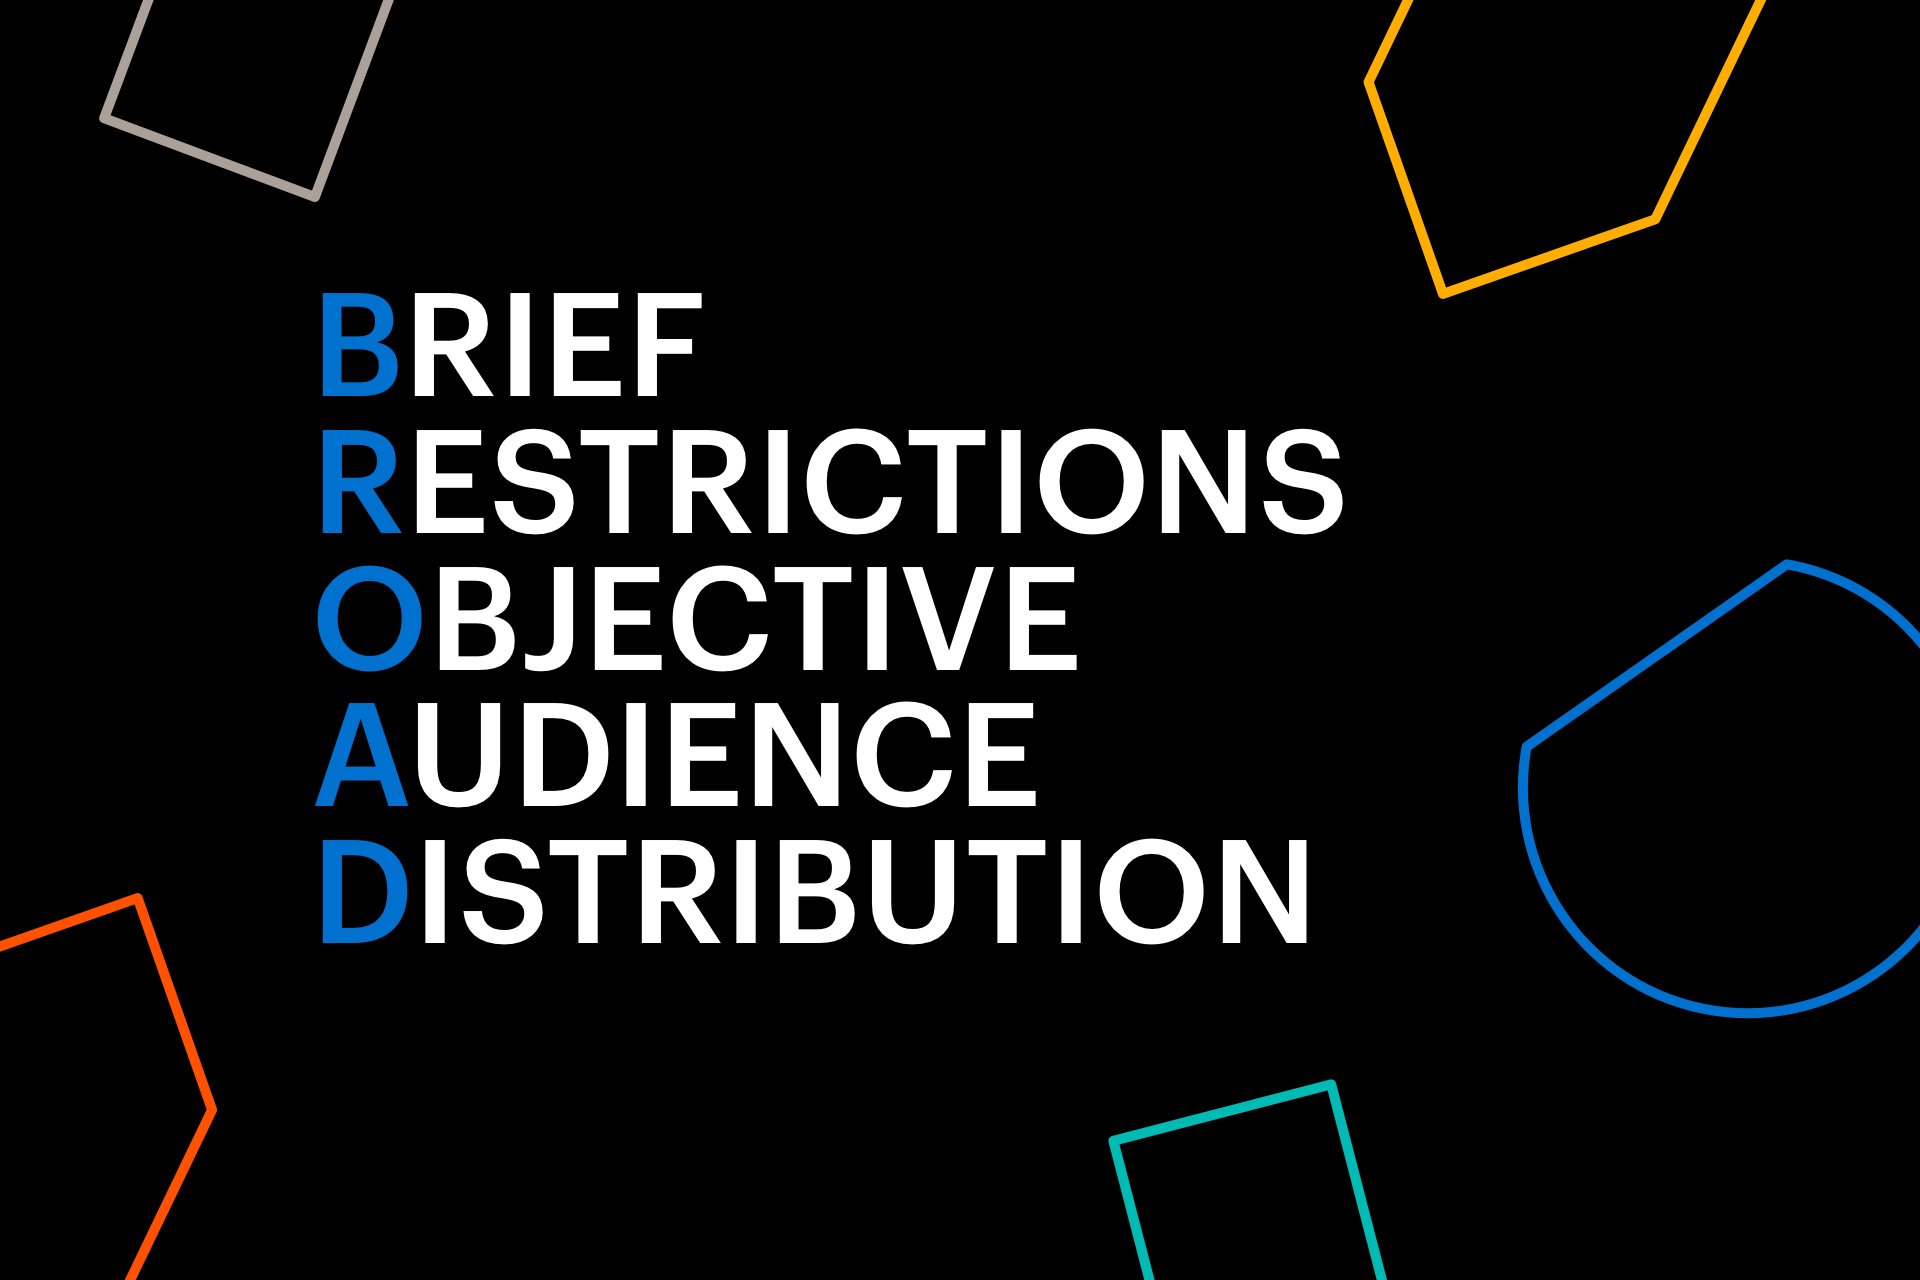 Graphic with Brief, Restrictions, Objective, Audience, and Distribution written on a black background with colour shapes around the border.